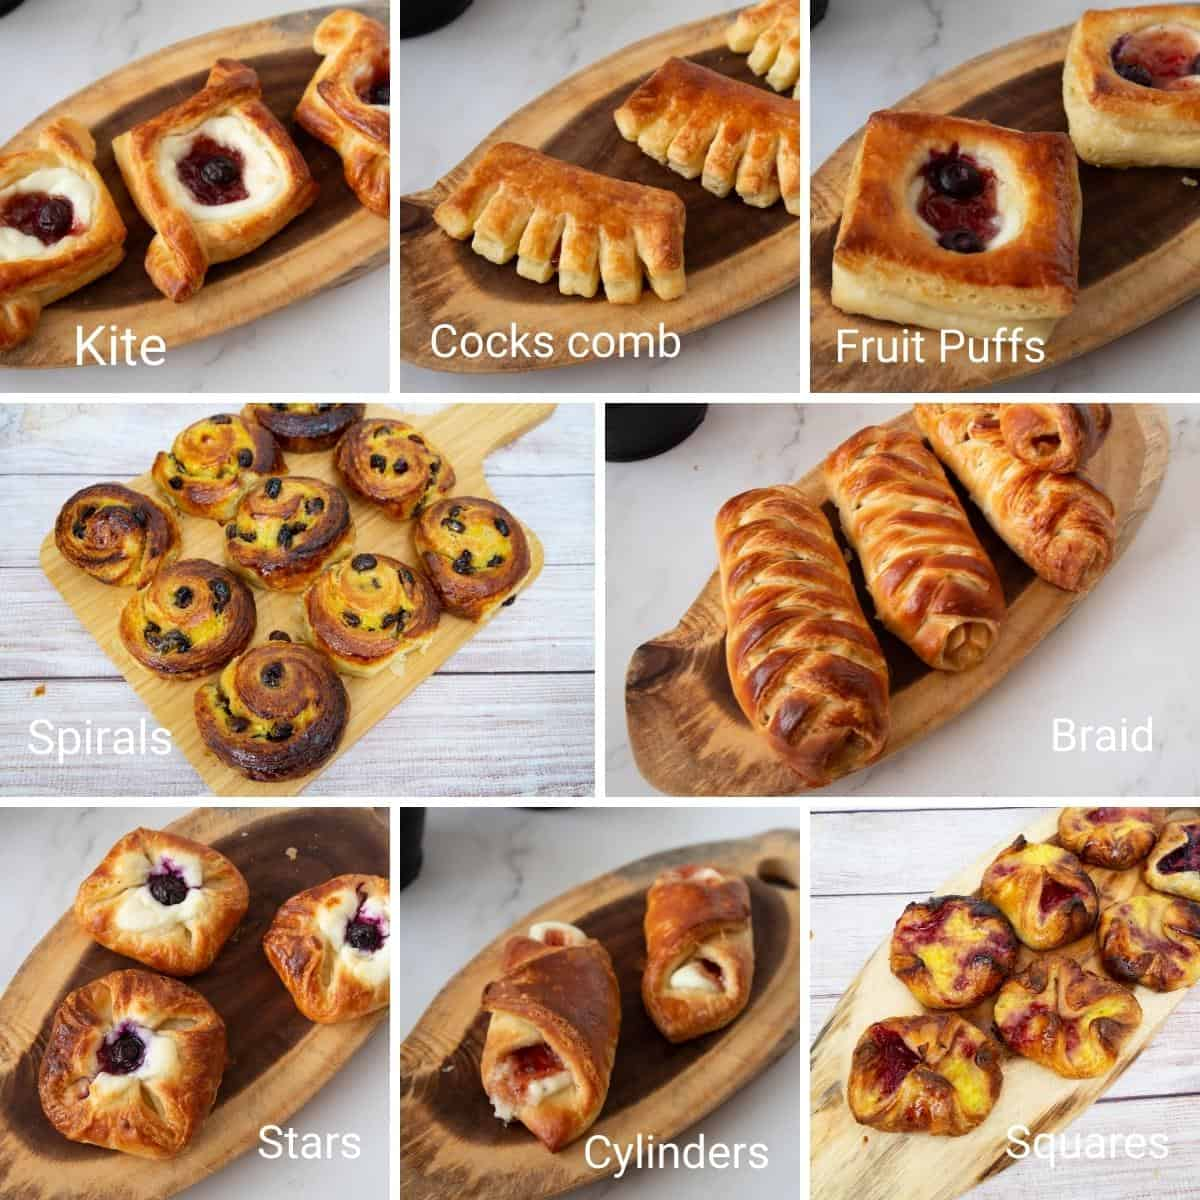 Danish Pastry Collage showing different danish shapes.